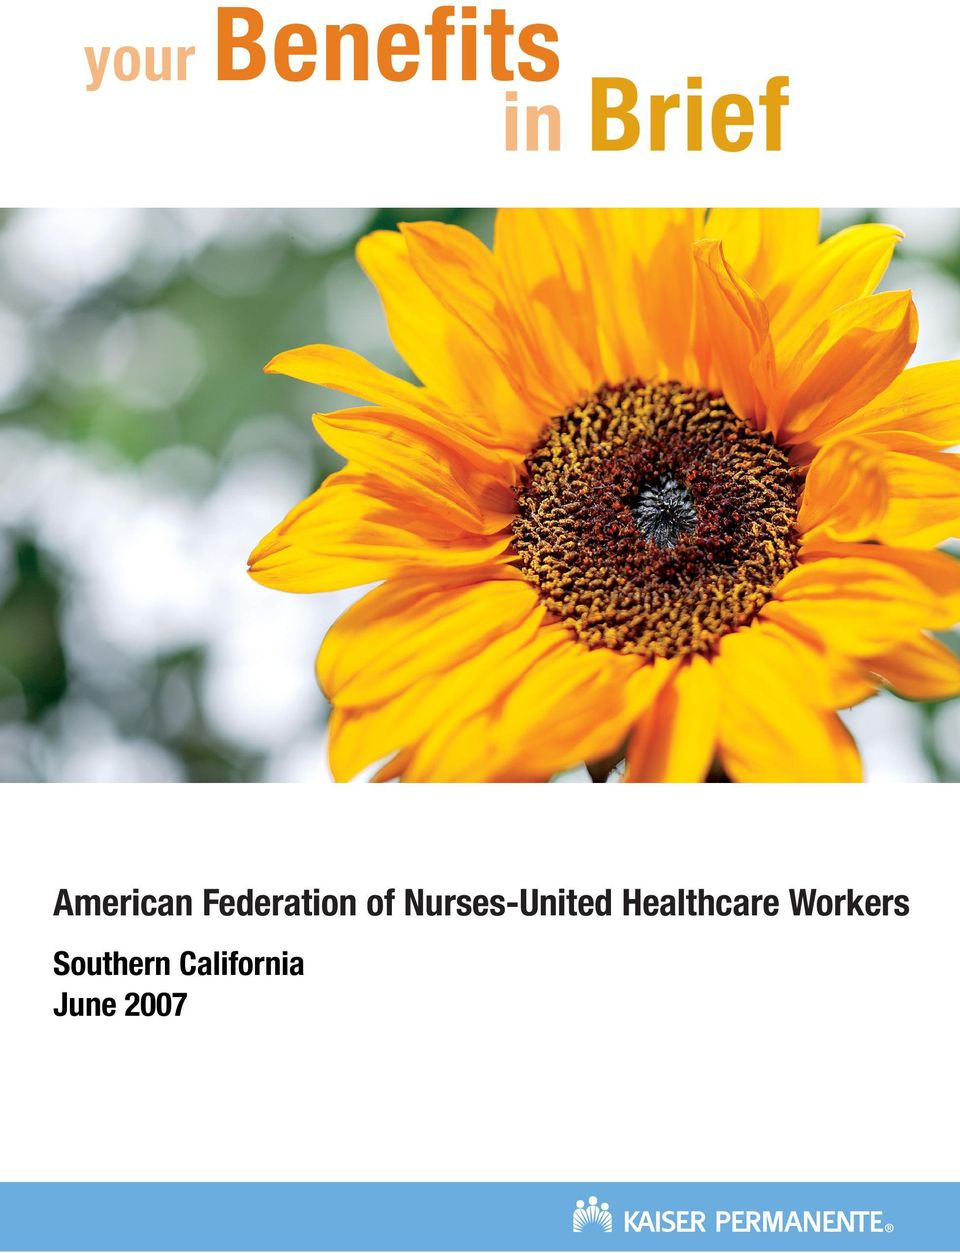 Nurses-United Healthcare